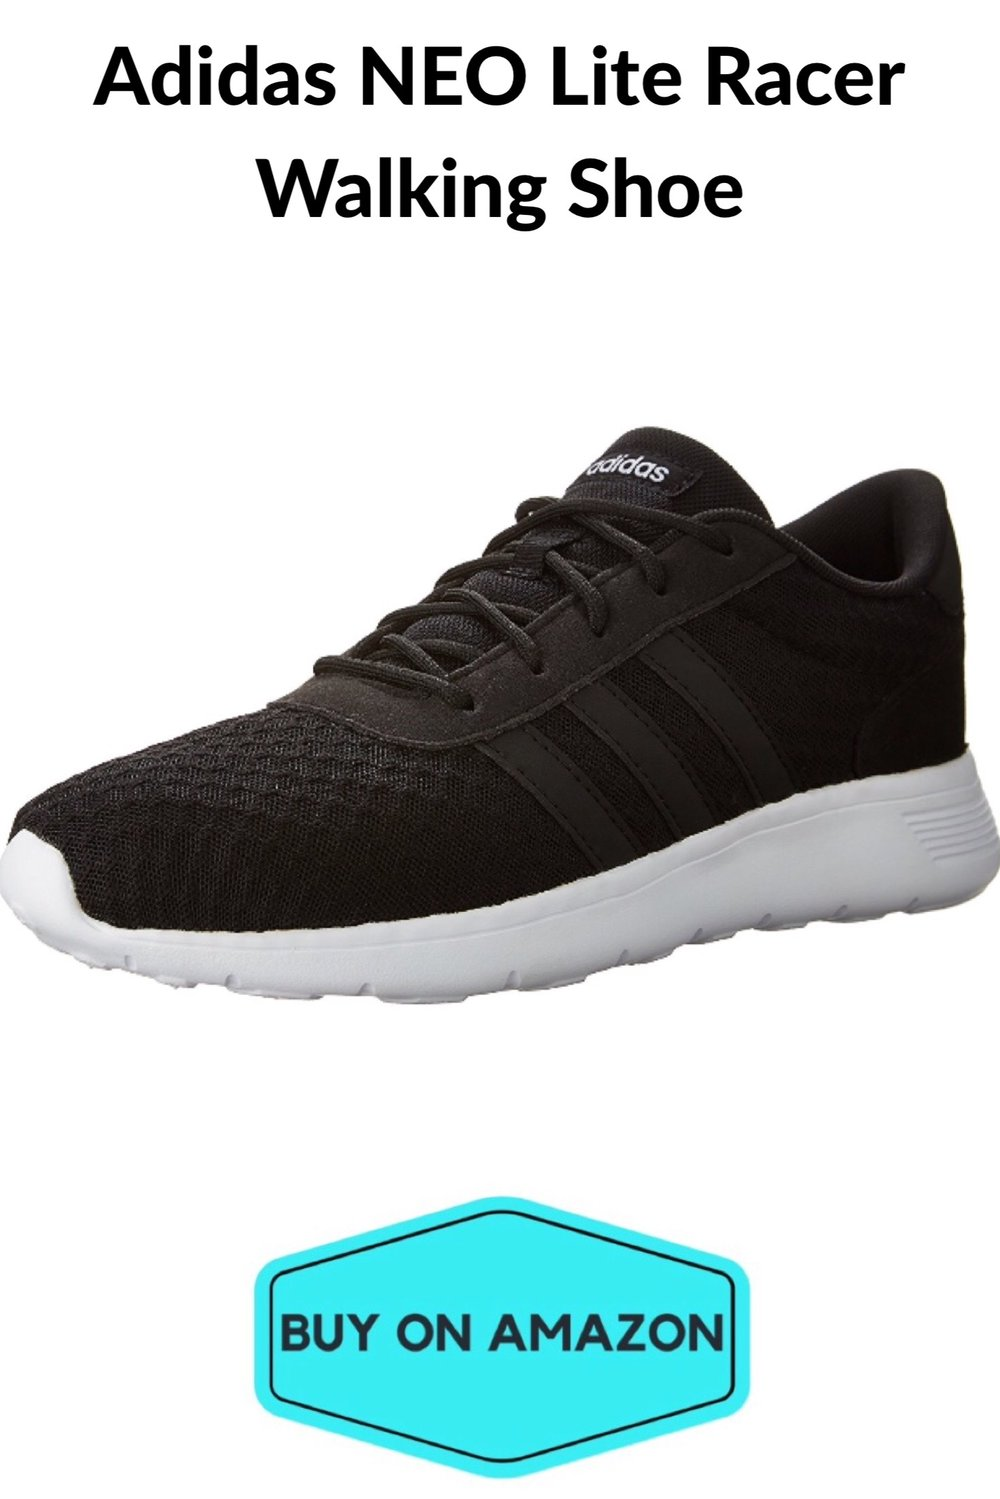 Adidas NEO Lite Racer Women's Walking Shoe